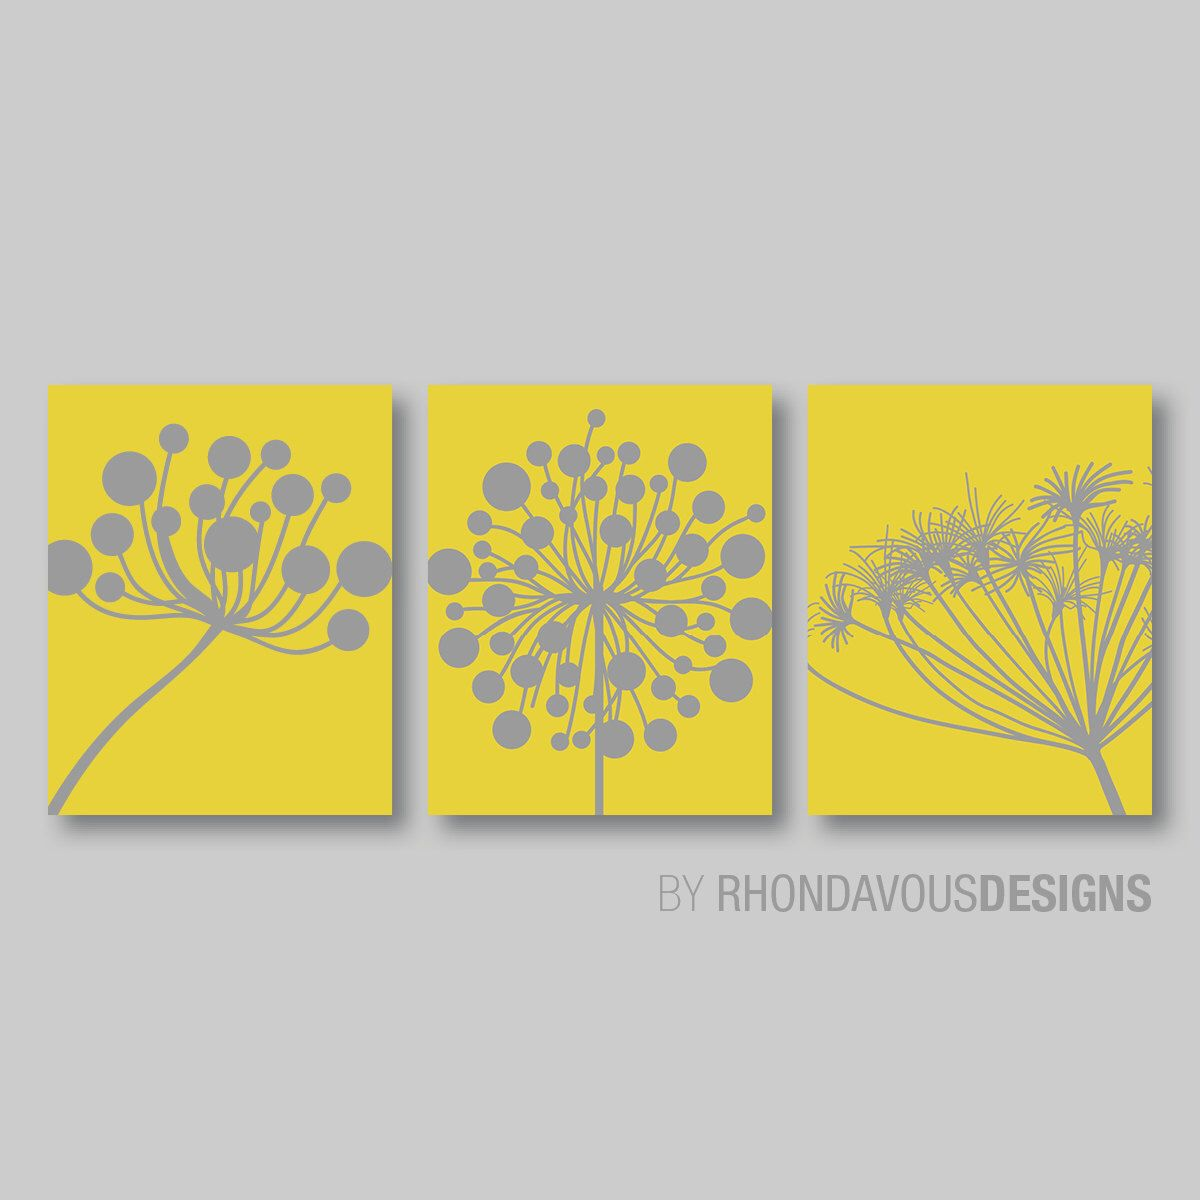 Abstract Modern Dandelions Print Trio - Yellow and Gray Dandelion. Nursery. Home Decor. Wall Art. Room. Living - You Pick the Size (NS-340) by RhondavousDesigns2 on Etsy https://www.etsy.com/listing/190724709/abstract-modern-dandelions-print-trio